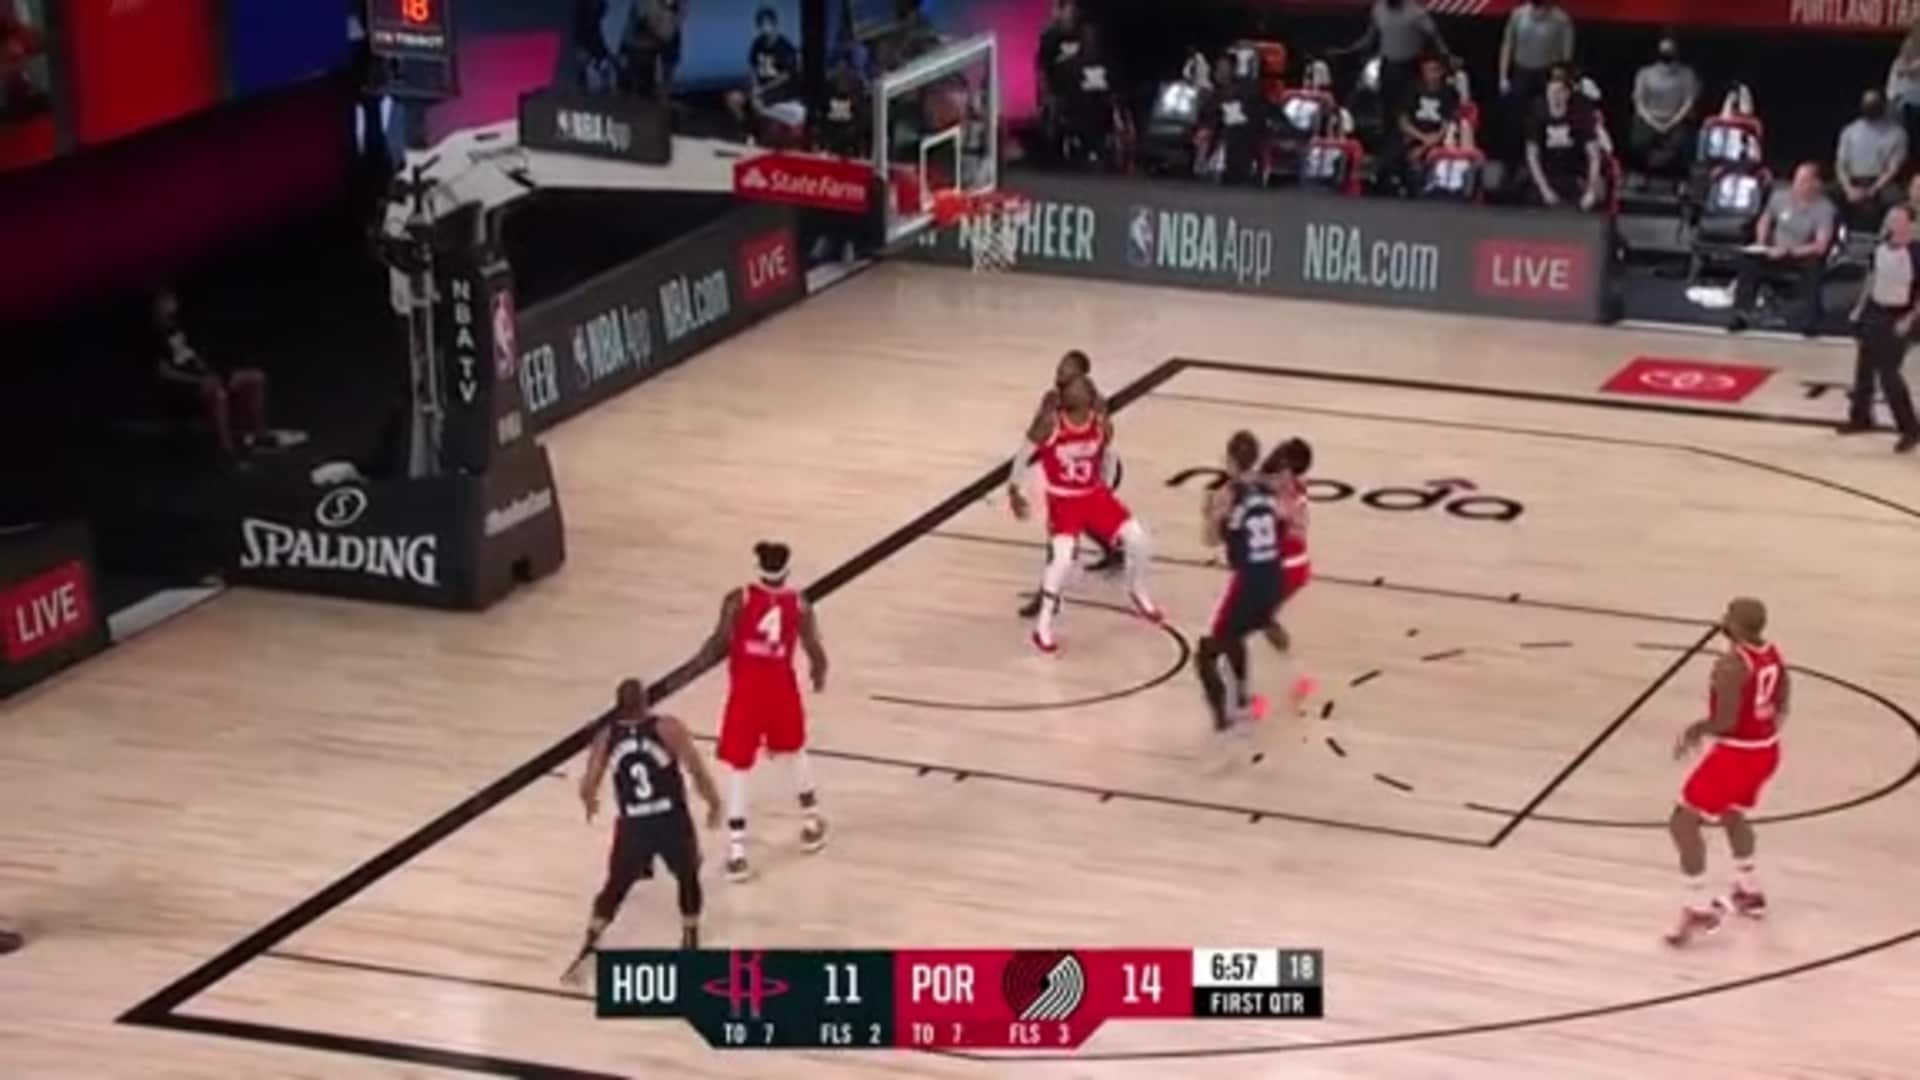 CJ gets two after the flashy dribble move